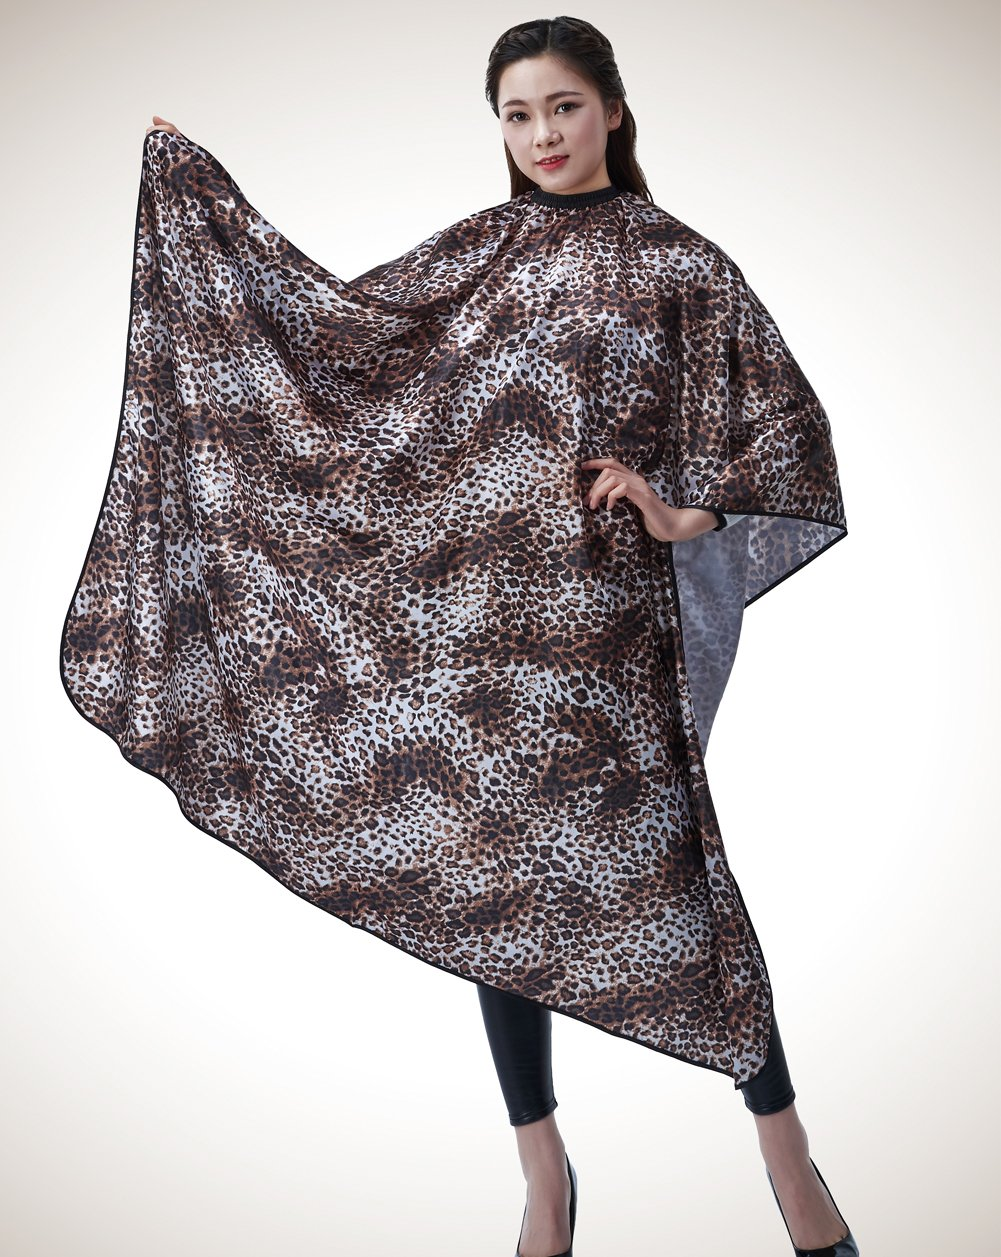 Colorfulife® Salon Professional Hair Styling Cape, Adult Hair Cutting Coloring Styling Waterproof Cape Satin Hairdresser Wai Cloth Barber Gown Home Camps & Hairdressing Wrap Leopard Pattern Capes